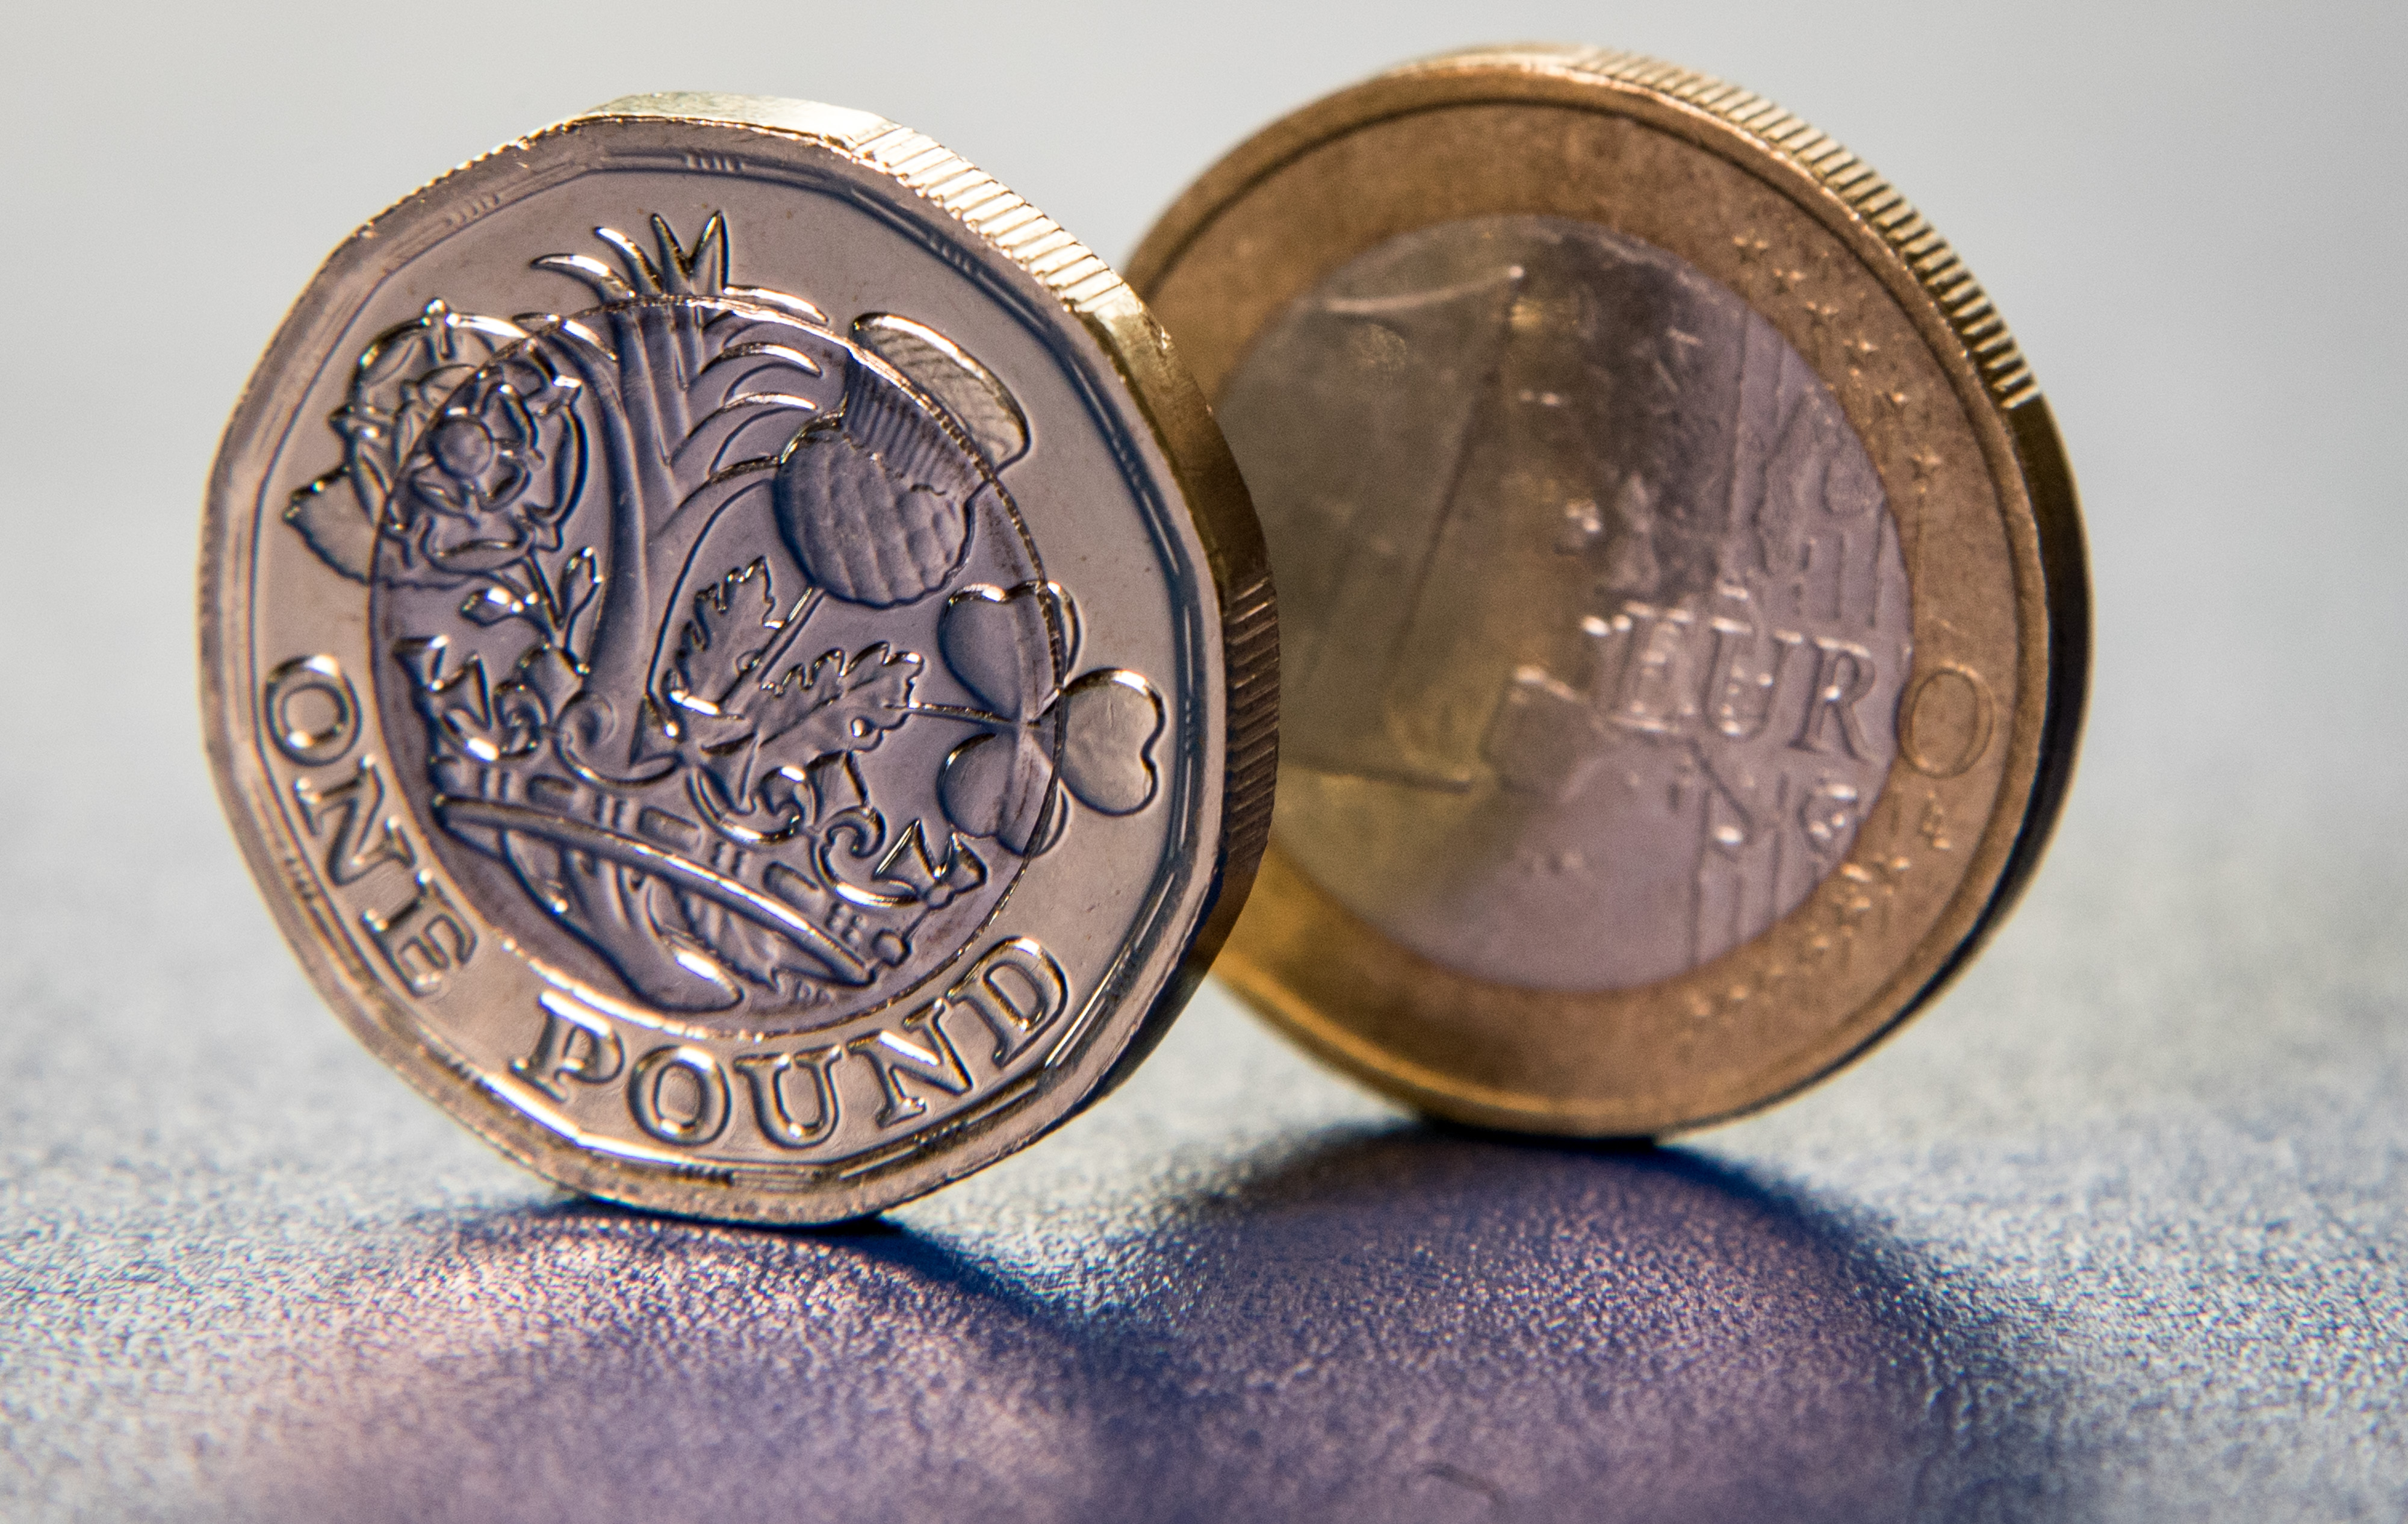 The new £1 pound coin